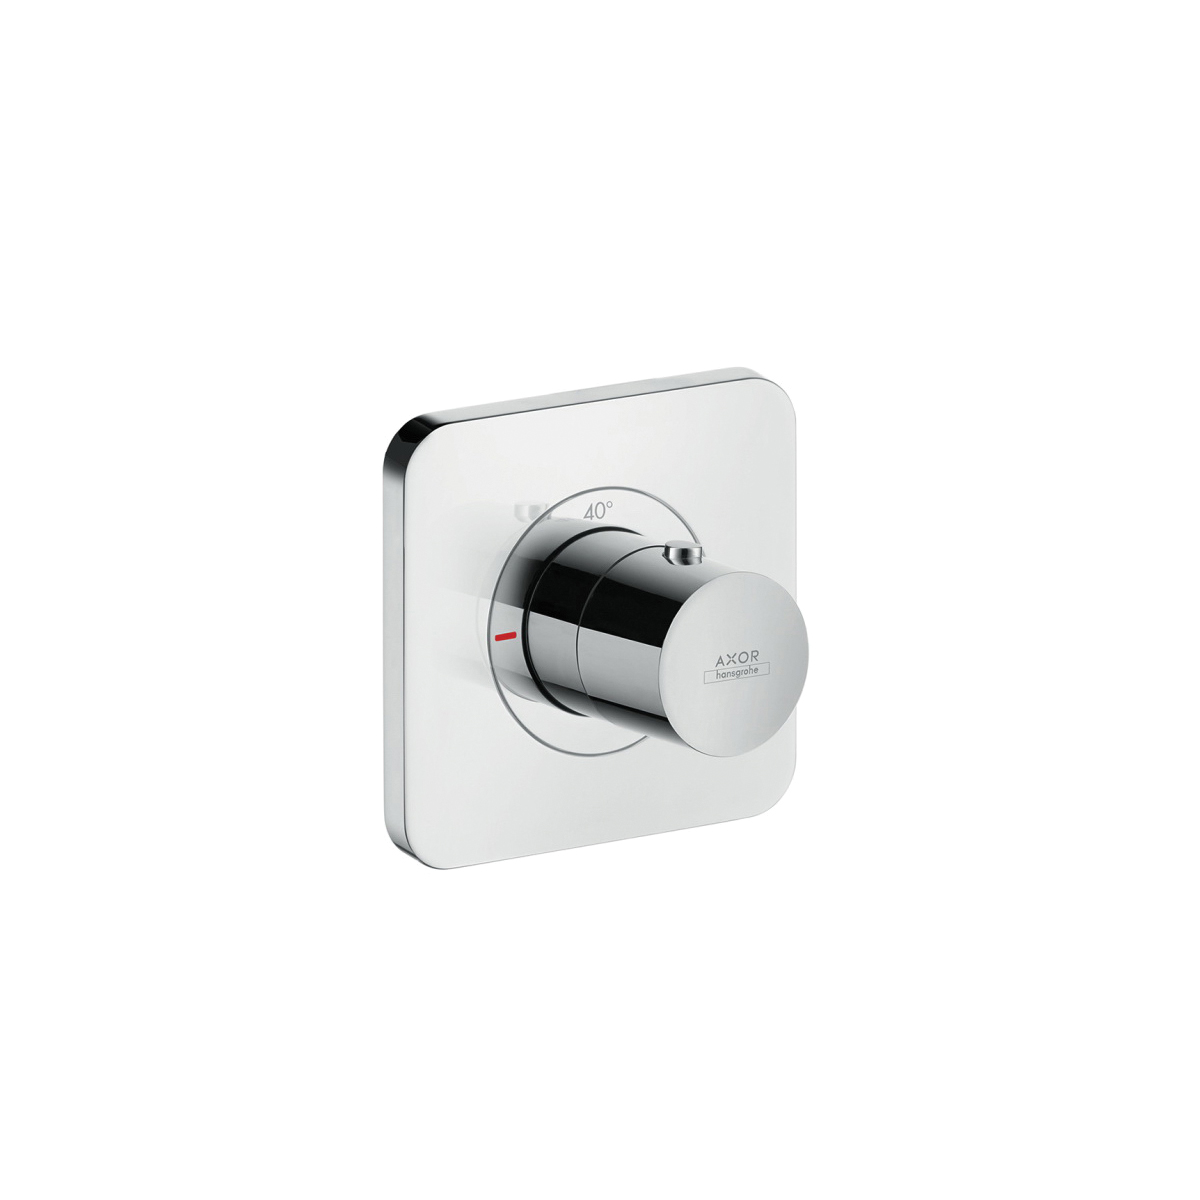 Hansgrohe 36702001 Axor Citterio E Thermostatic Mixer Trim, Hand Shower Yes/No: No, Chrome Plated